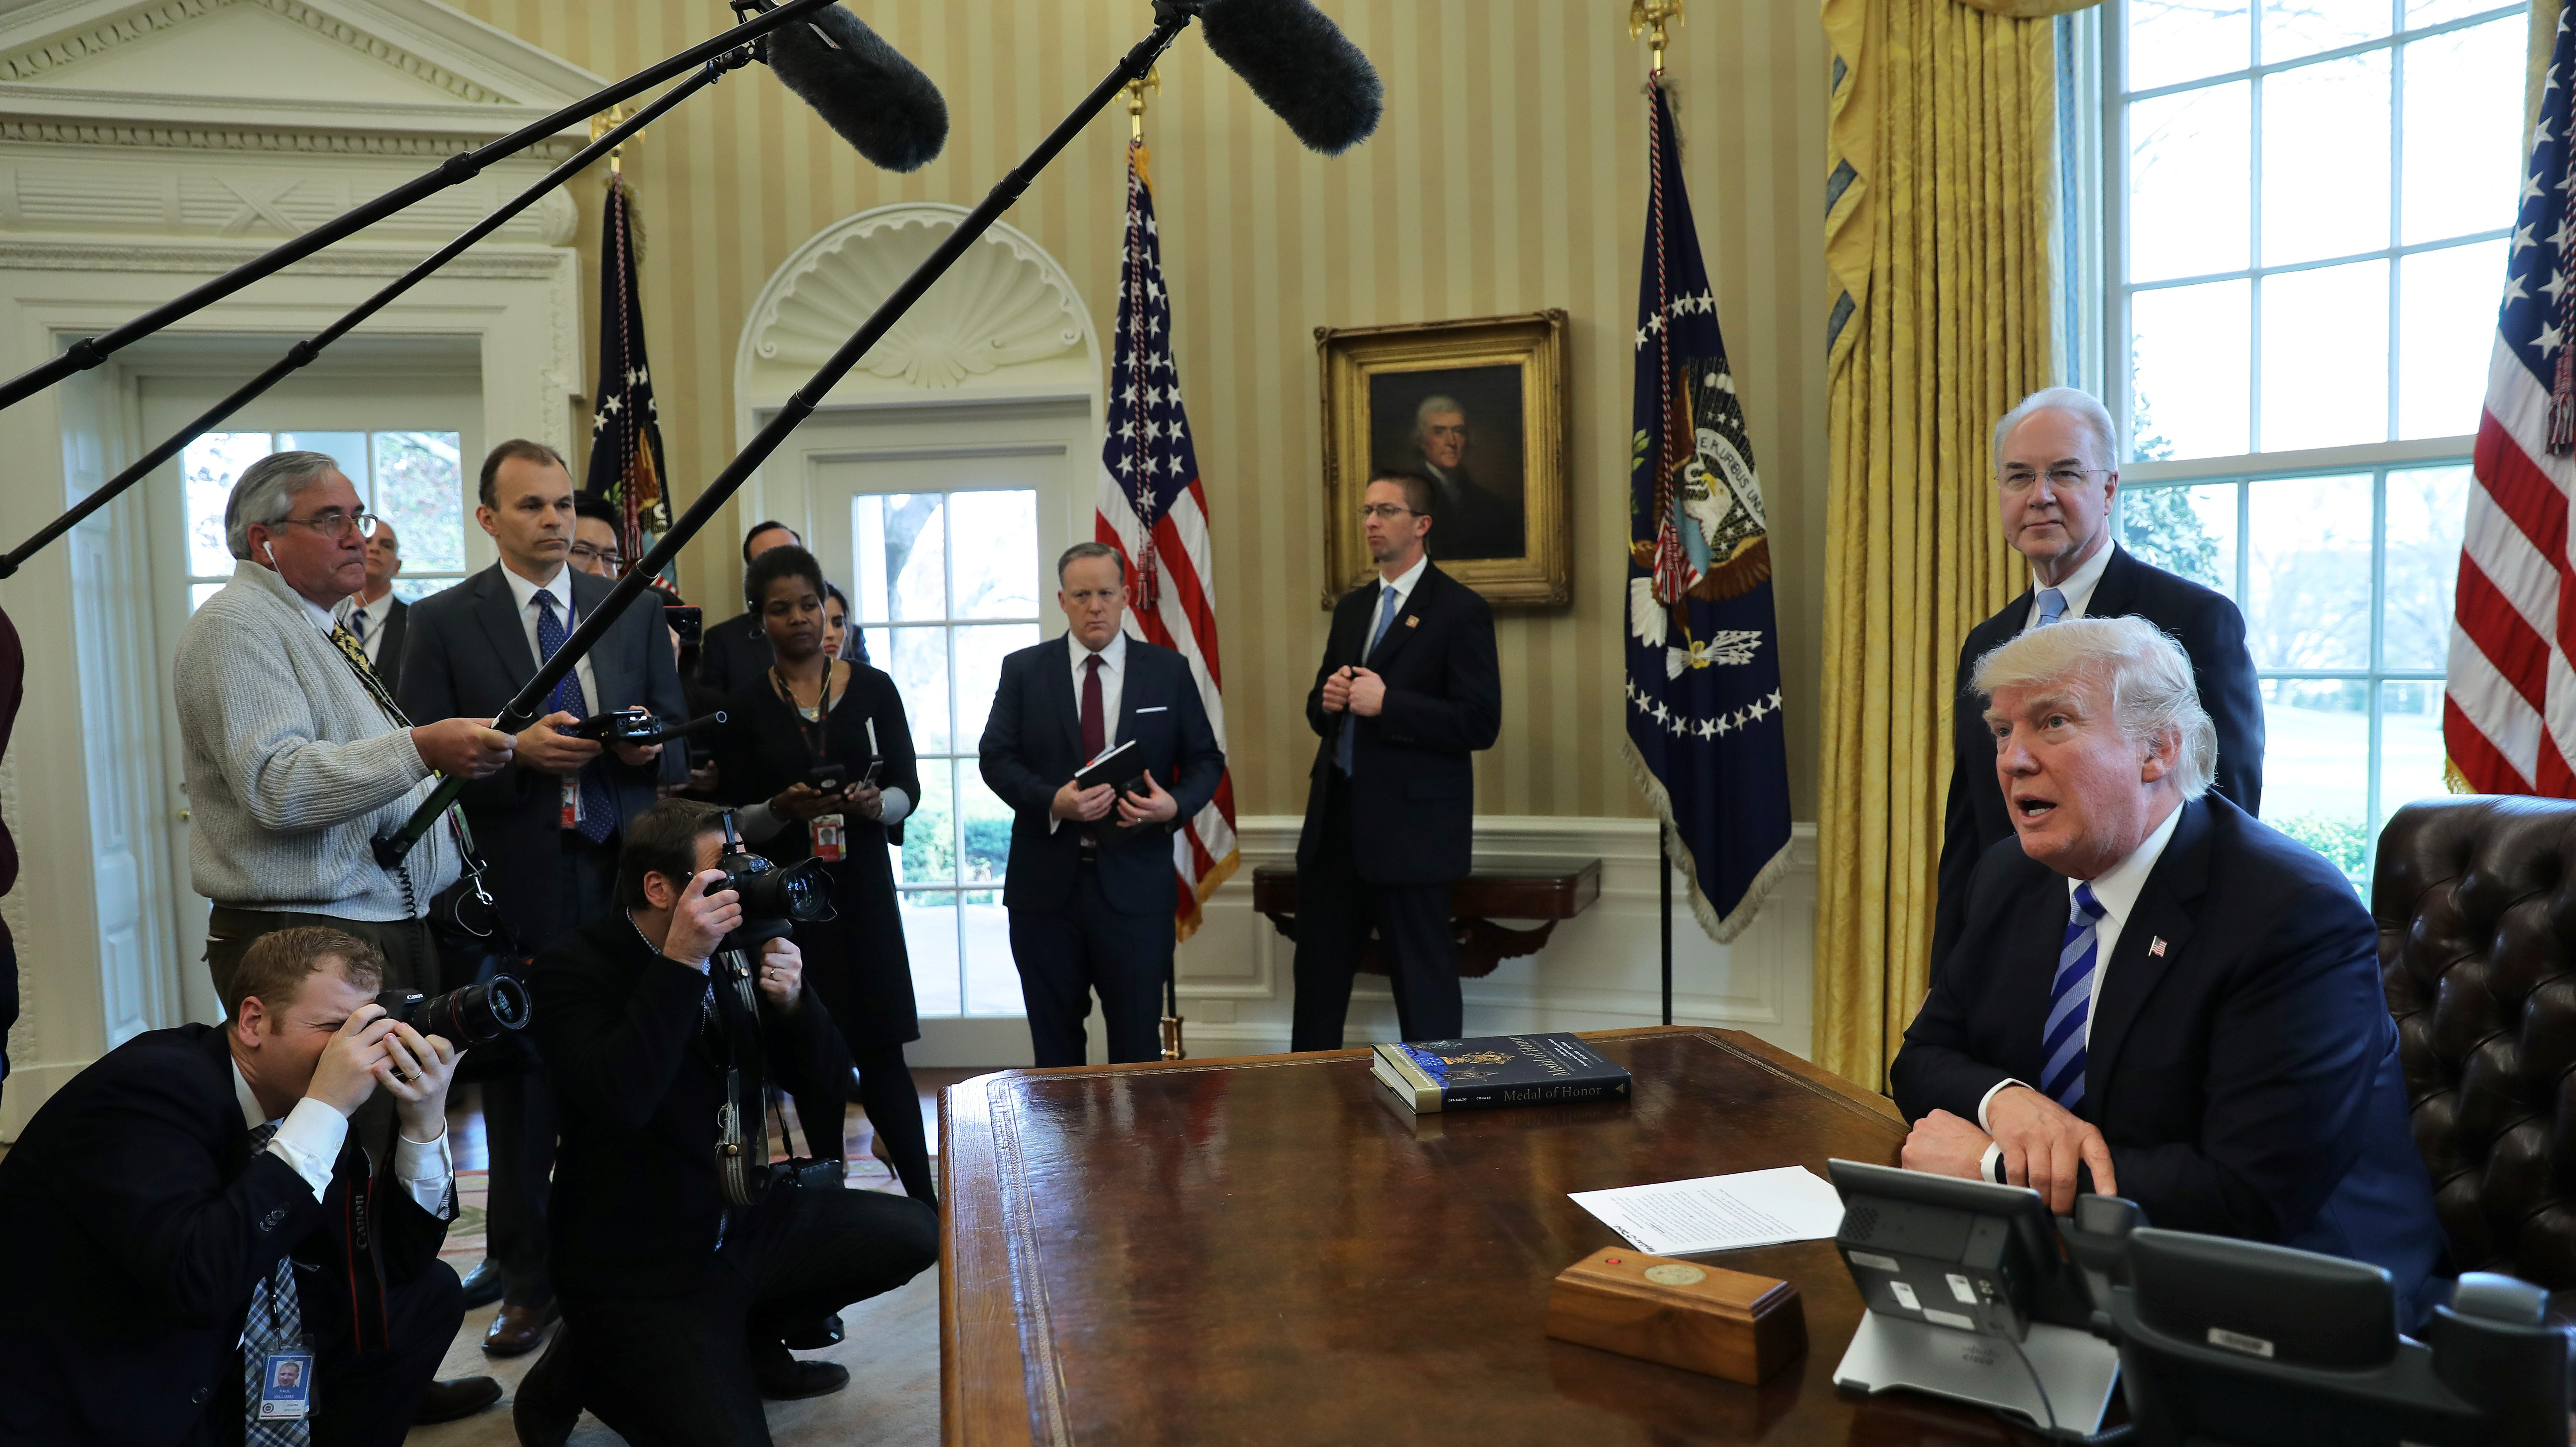 U.S. President Donald Trump talks to journalists at the Oval Office of the White House after the AHCA health care bill was pulled before a vote.